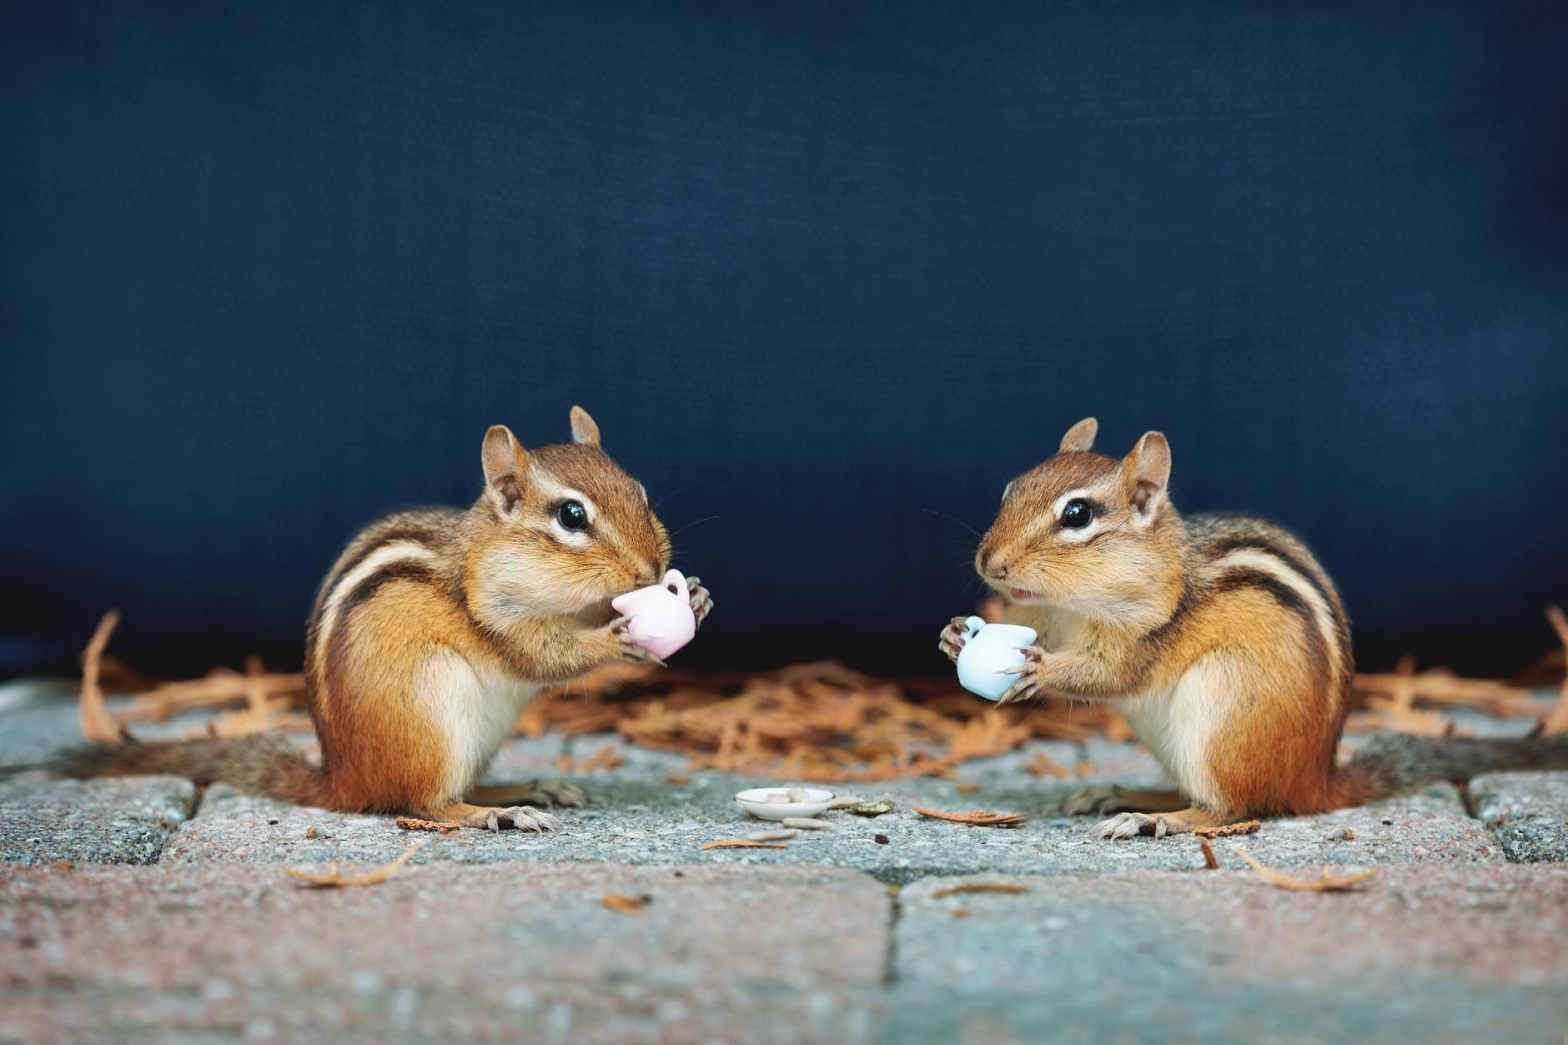 squirrels on concrete surface